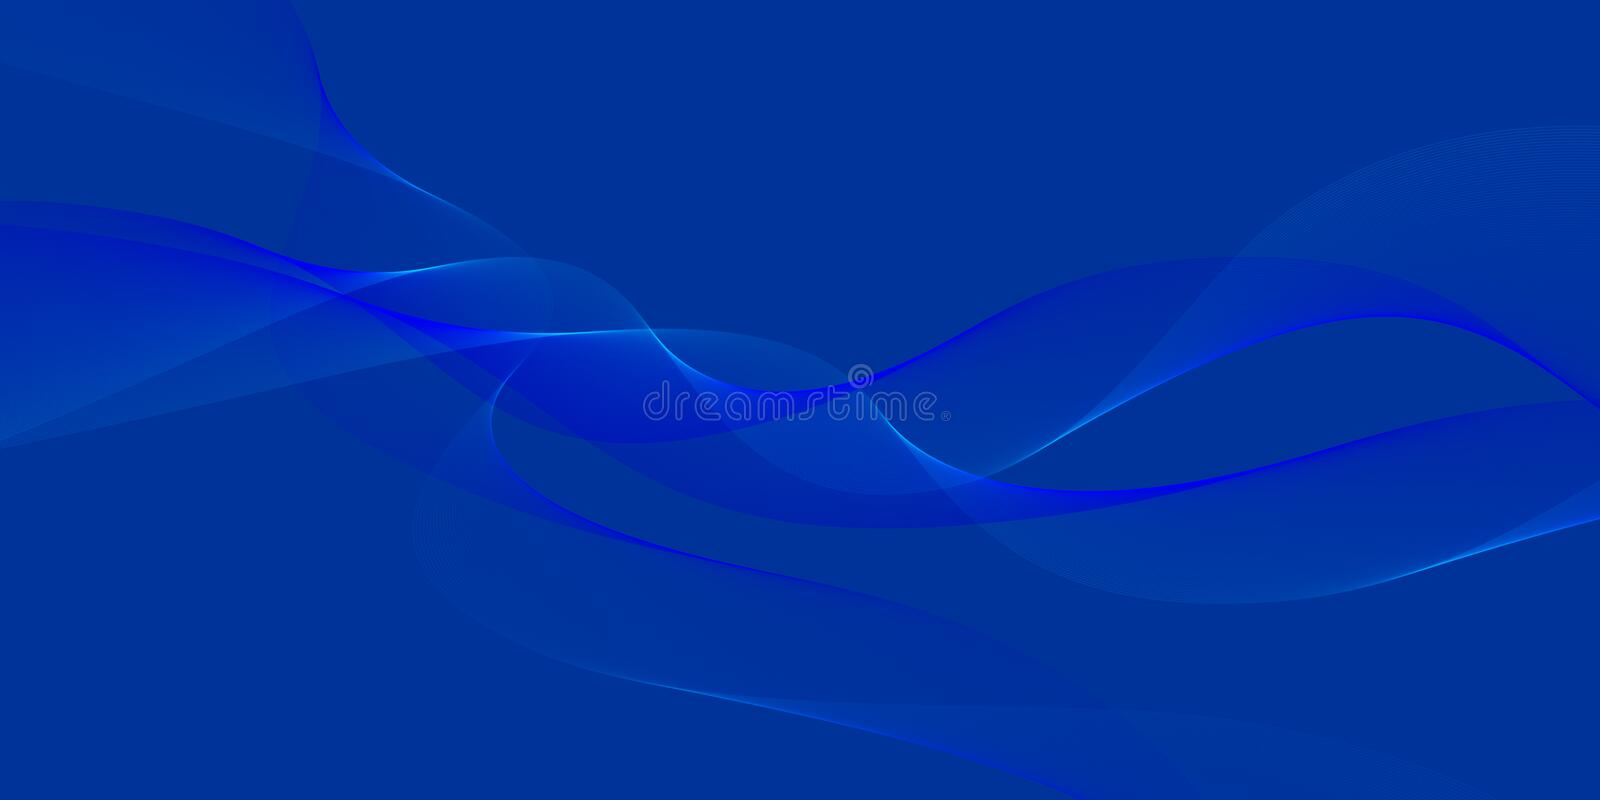 Abstract Vector Blue Blur Wavy Background vector illustration